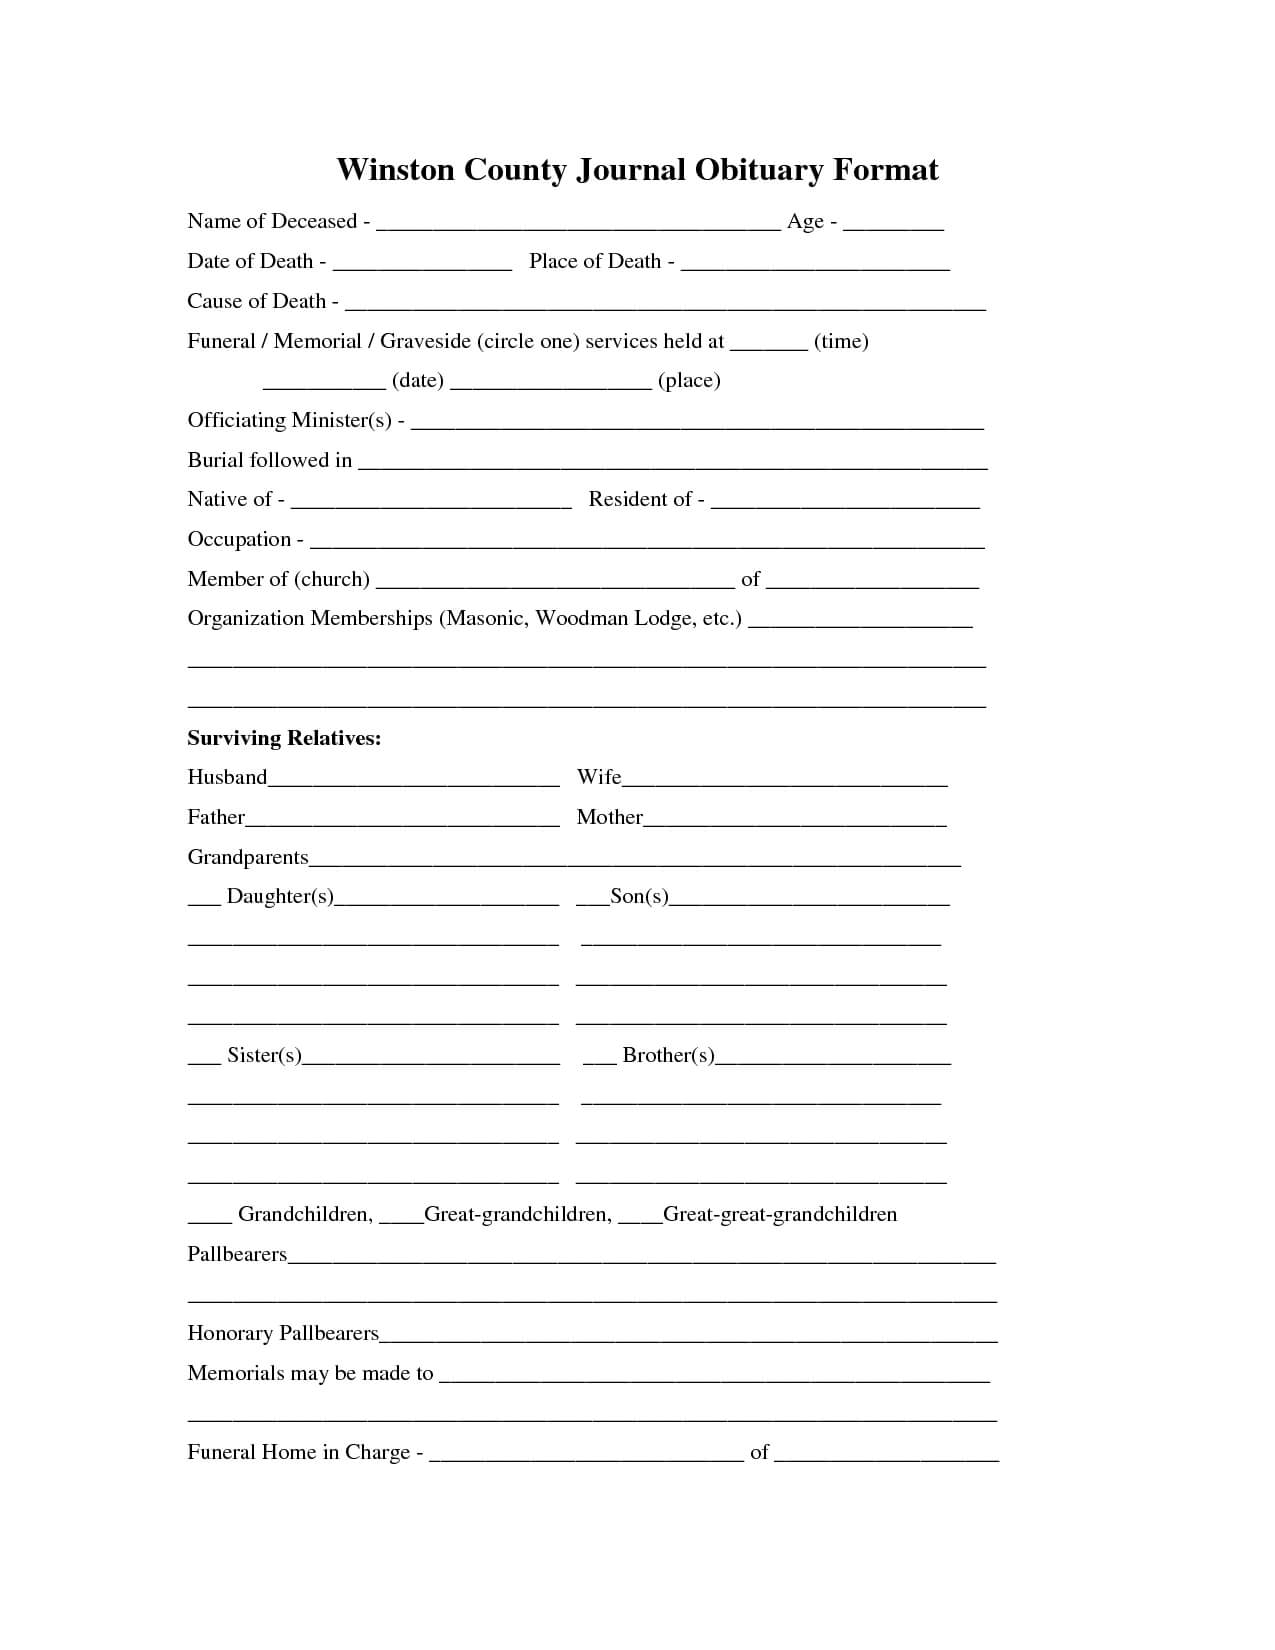 Printable Obituary Template | Fill In The Blank Obituary Throughout Fill In The Blank Obituary Template